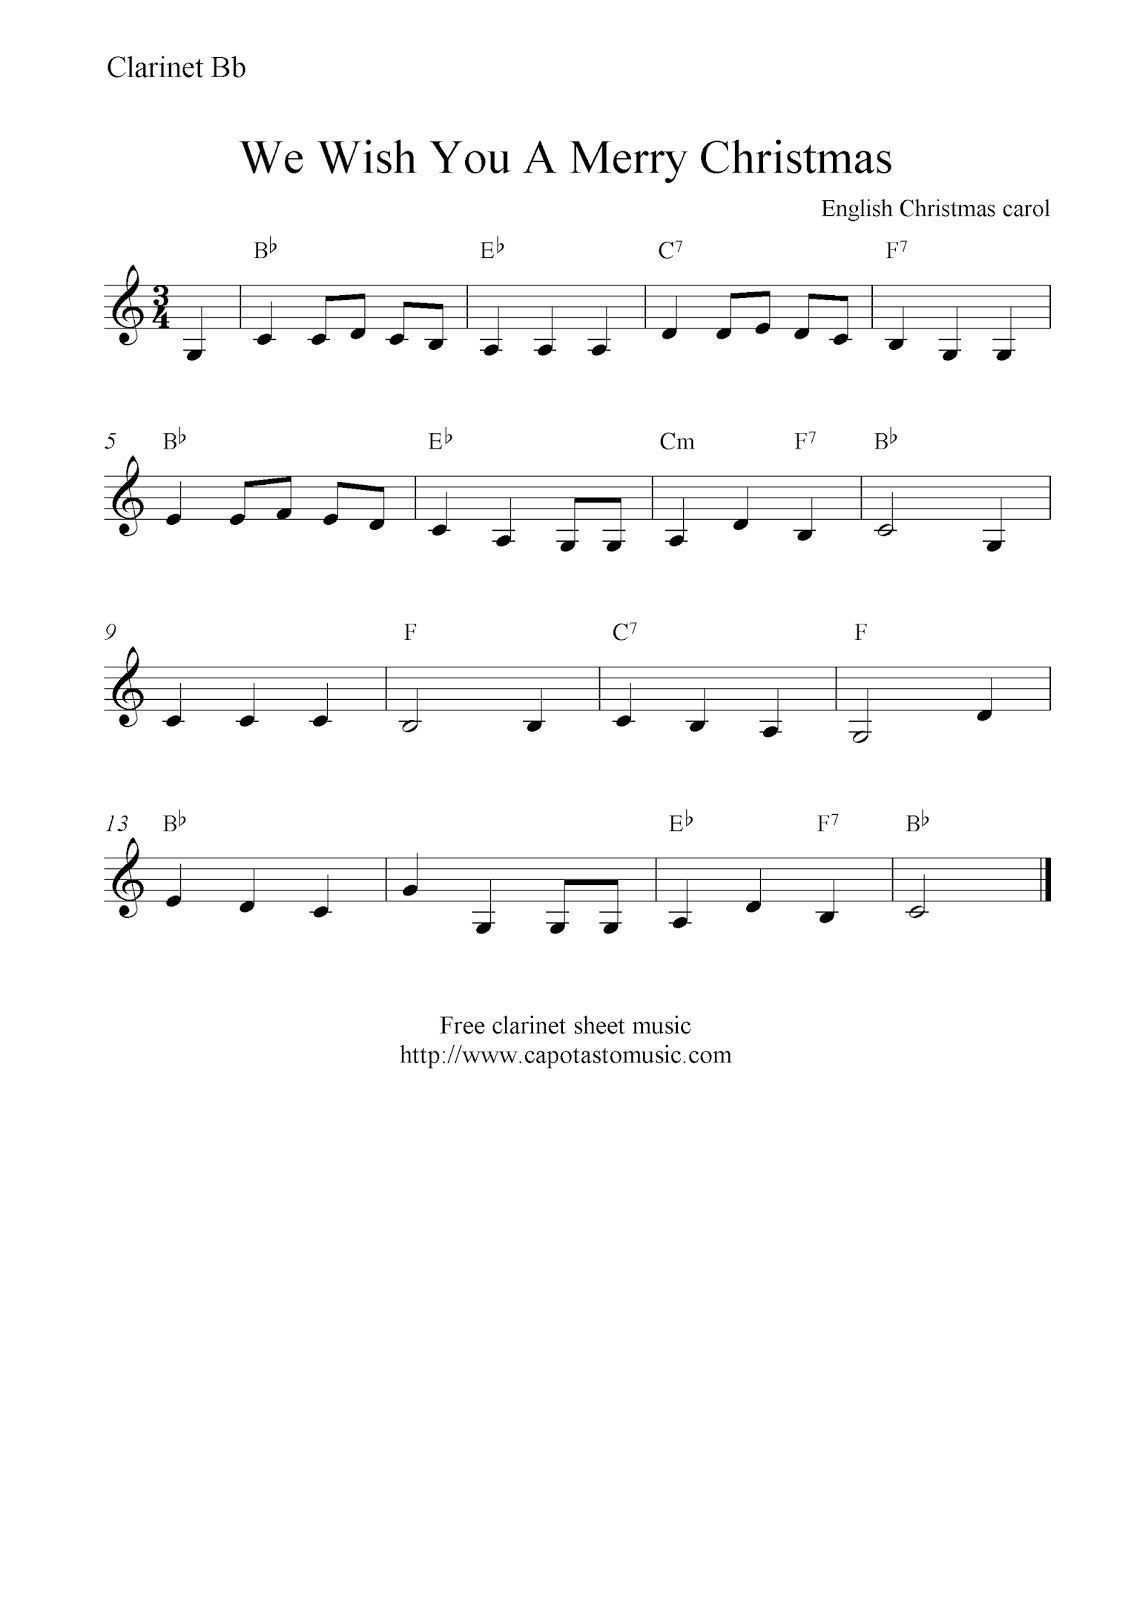 Sizzling image intended for free printable clarinet sheet music